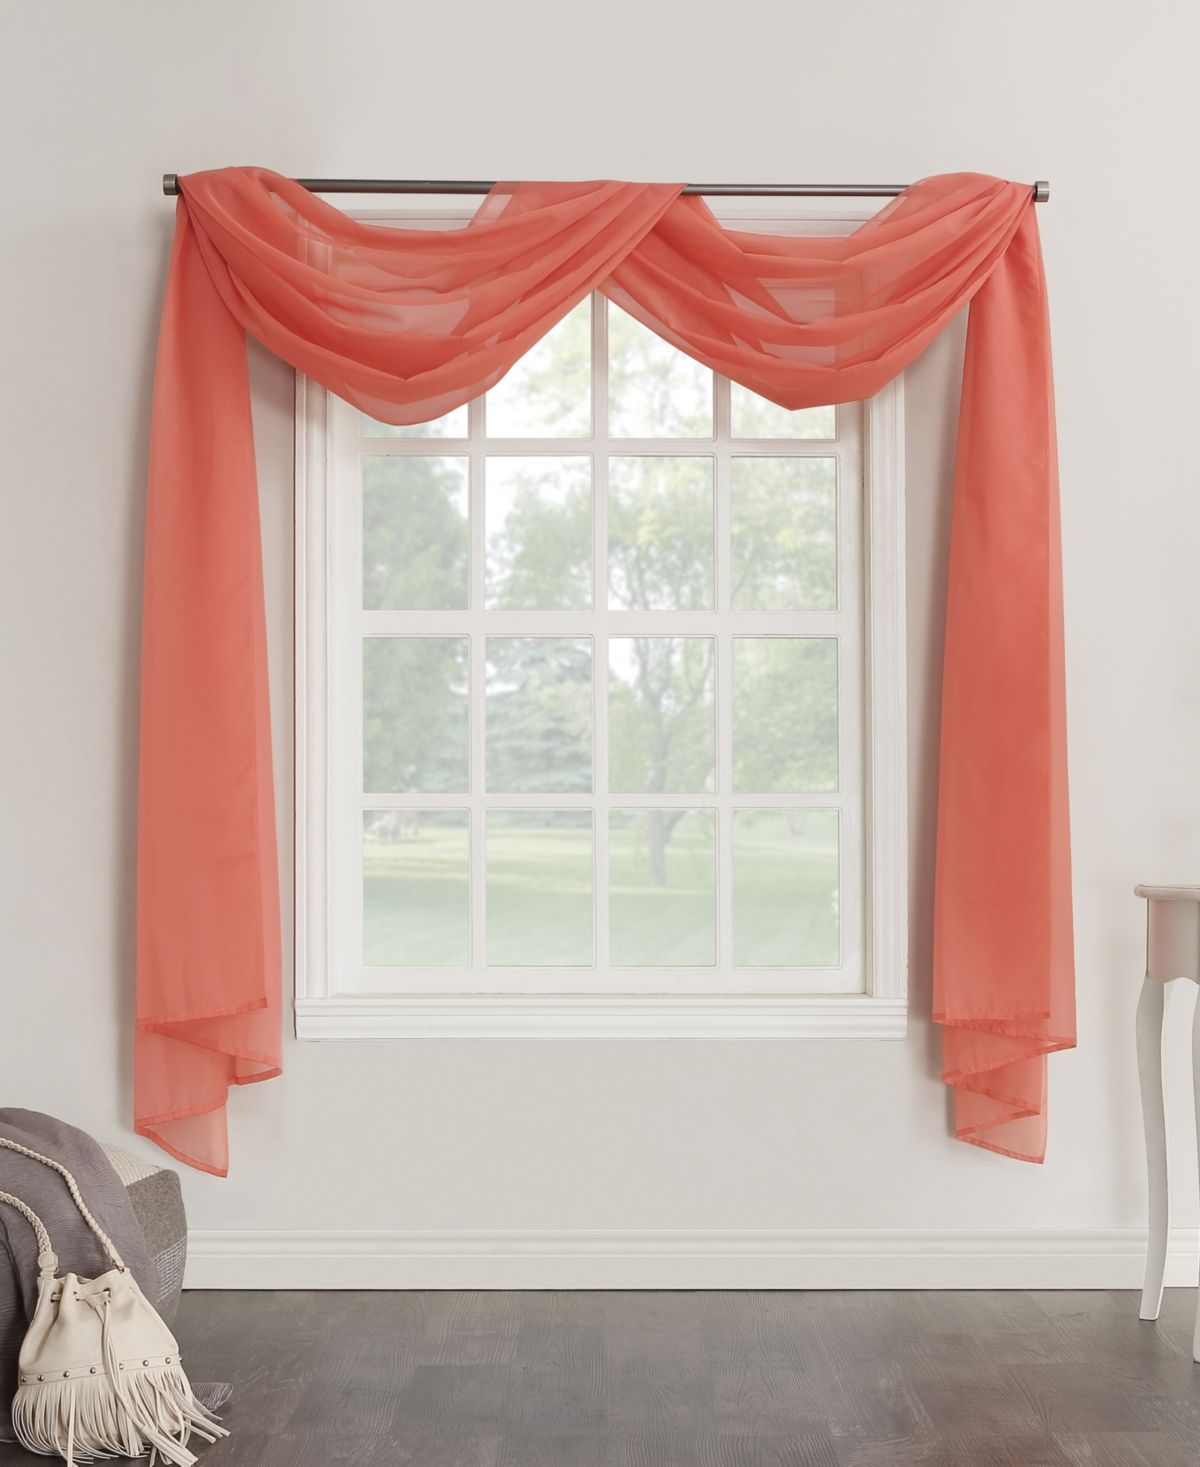 No 918 Sheer Voile 59 X 216 Scarf Valance Reviews Curtains